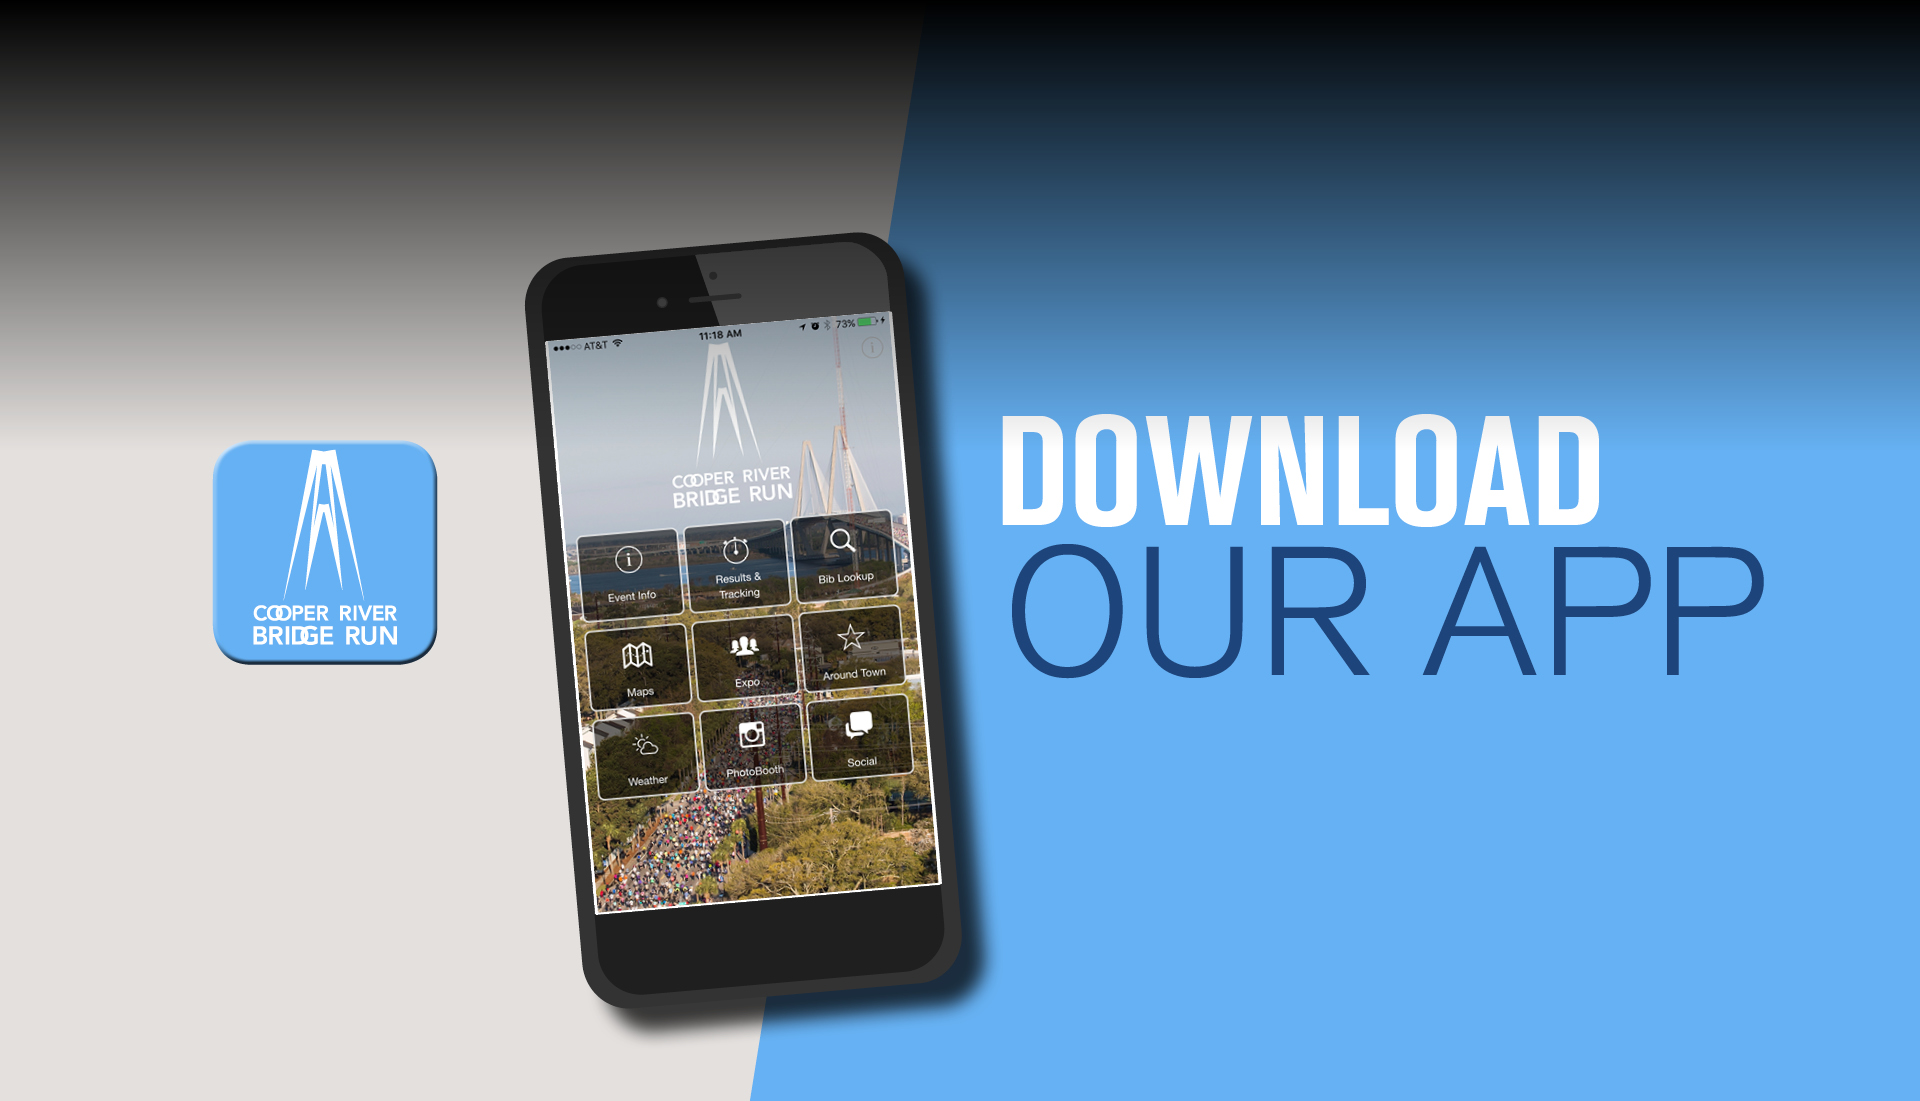 Check Out Our New APP